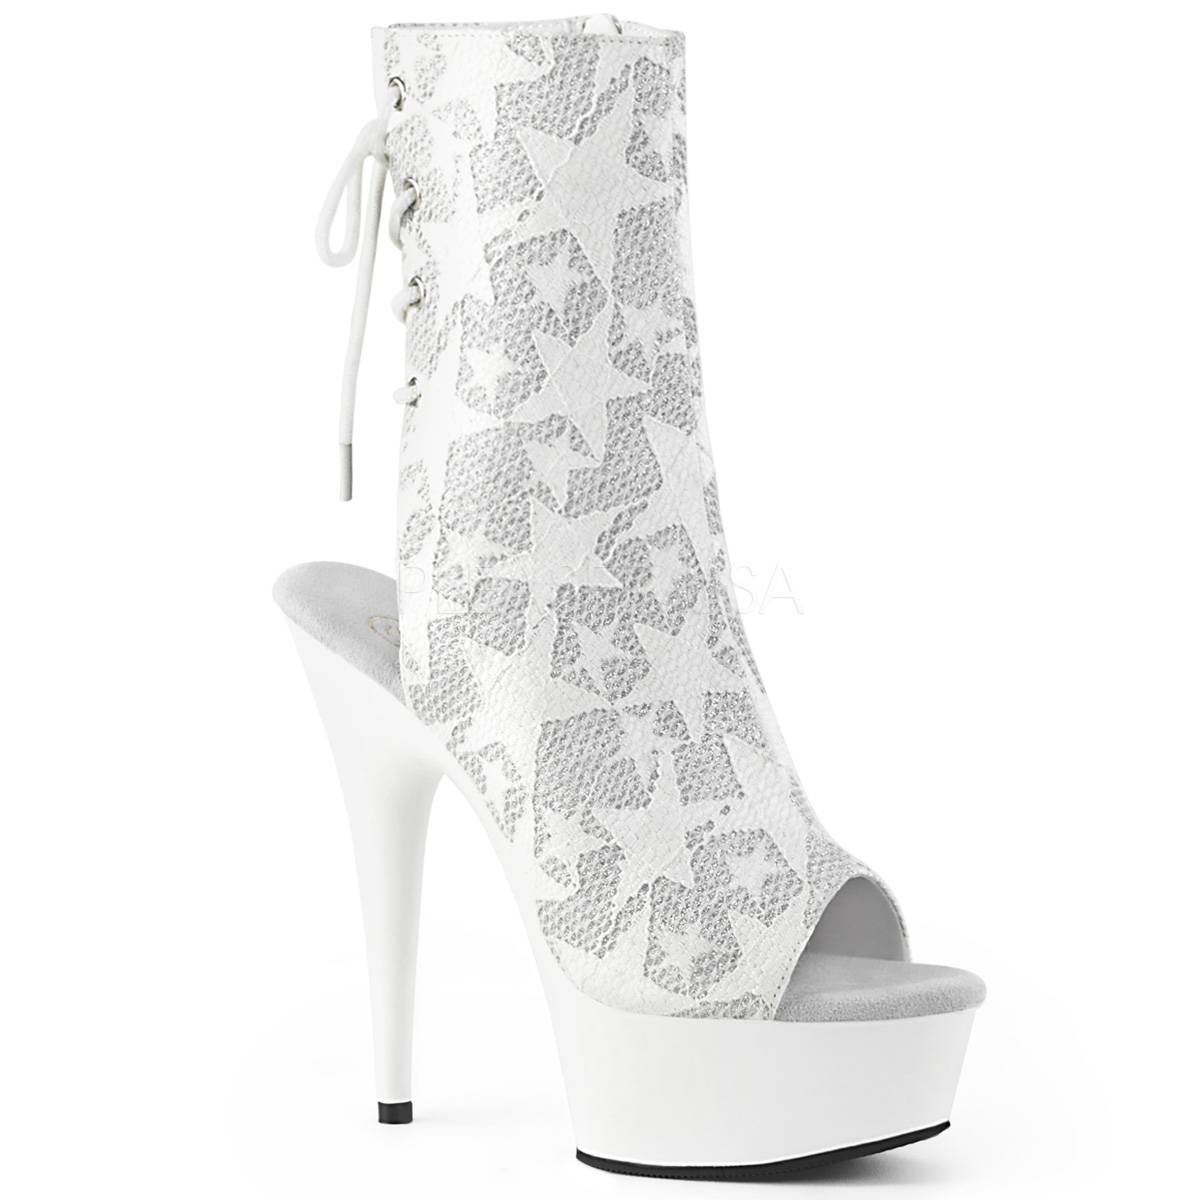 7fb60fb9a69 White-15-cm-DELIGHT-1018FNSTAR-Pole-dancing-ankle-boots-11125 0.jpg